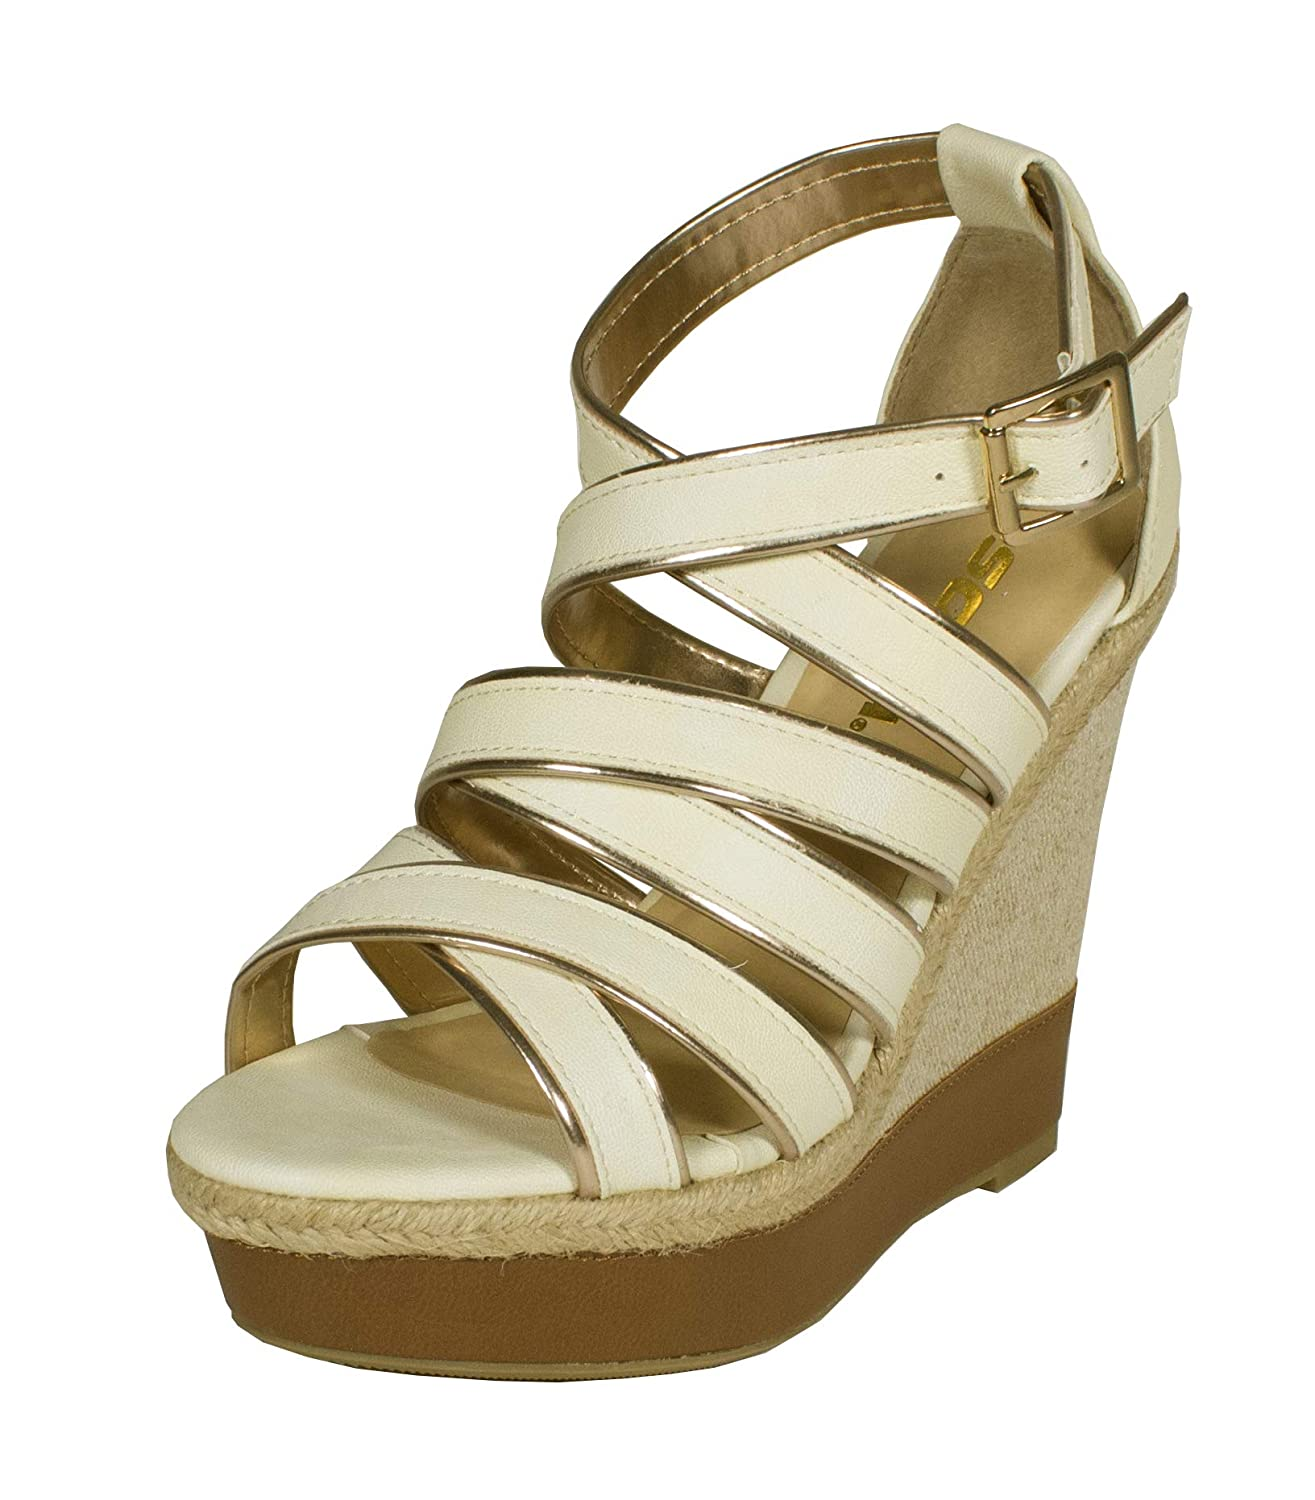 b508b56e0 Amazon.com | SODA Stat Strappy Open Toe Leatherette Strip and Woven Espadrille  Wedge Sandal with Ankle Buckle, off white leatherette, 6.5 M | Sandals